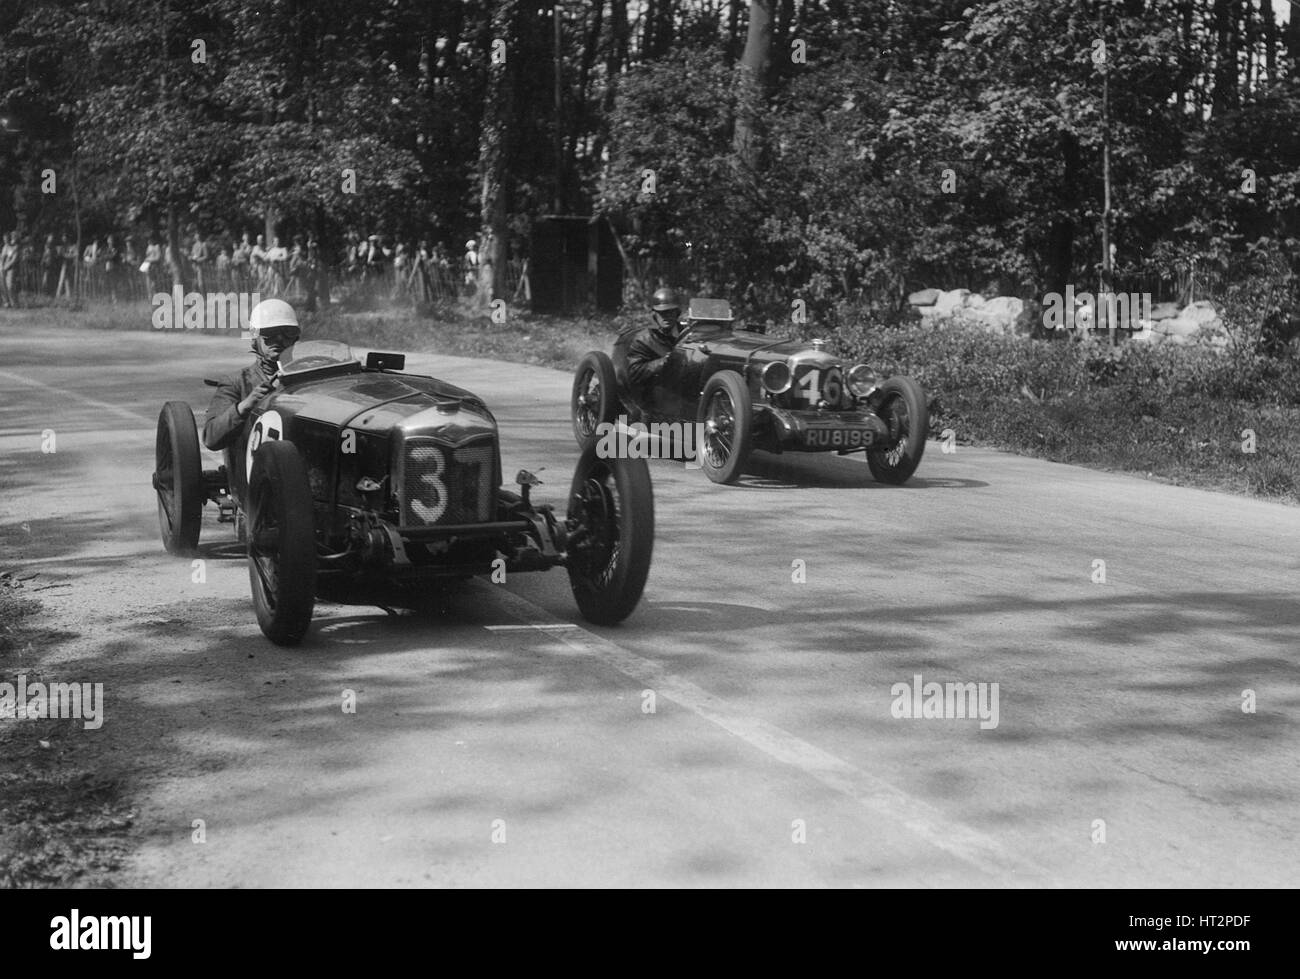 Two Riley Brooklands racing at Donington Park, Leicestershire, 1930s. Artist: Bill Brunell. - Stock Image